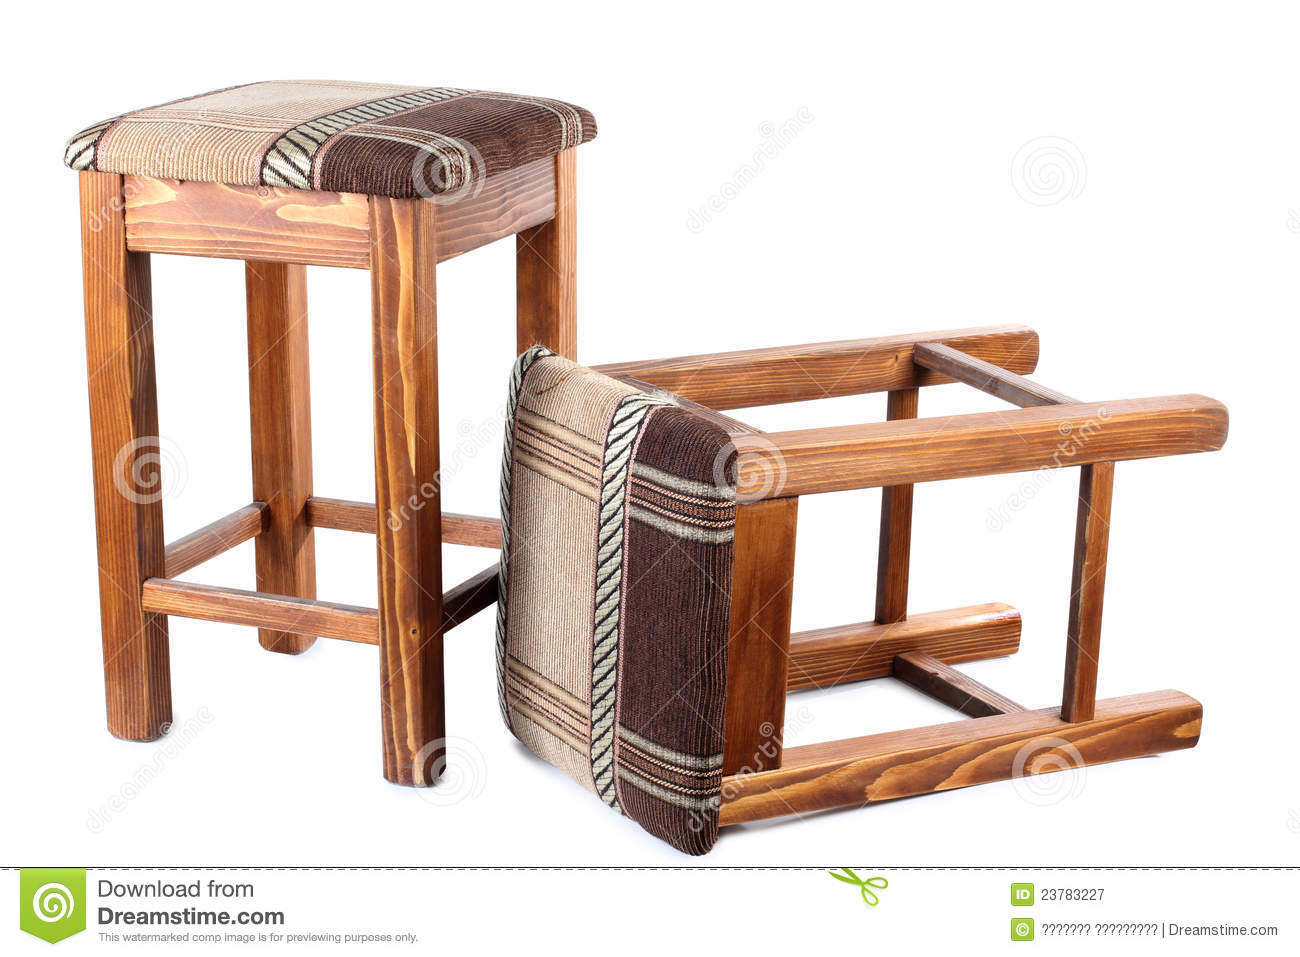 Wonderful image of Two Old Wooden Stool Royalty Free Stock Photography Image: 23783227 with #85A625 color and 1300x957 pixels